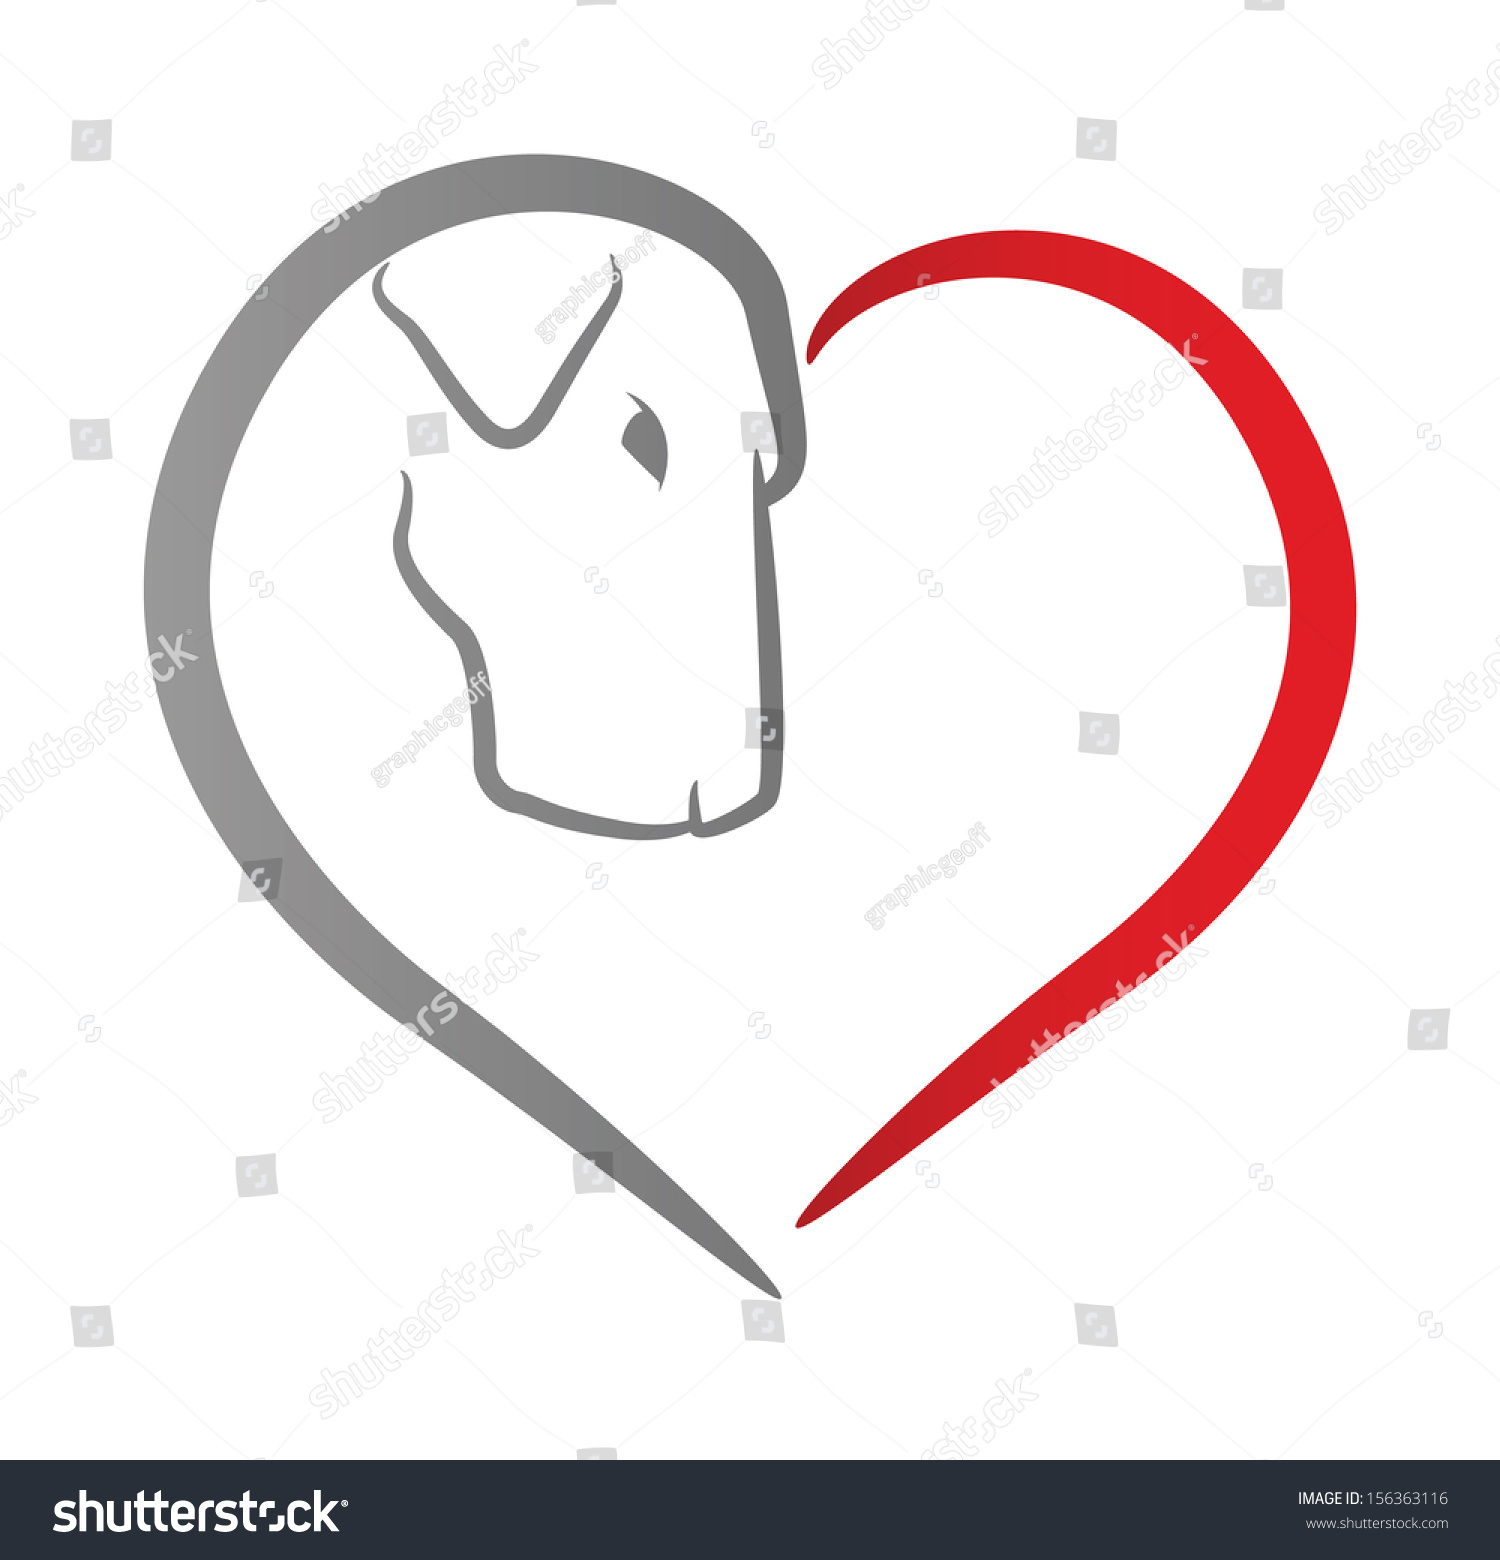 Icon dogs head within red heart stock illustration 156363116 icon of a dogs head within a red heart biocorpaavc Images